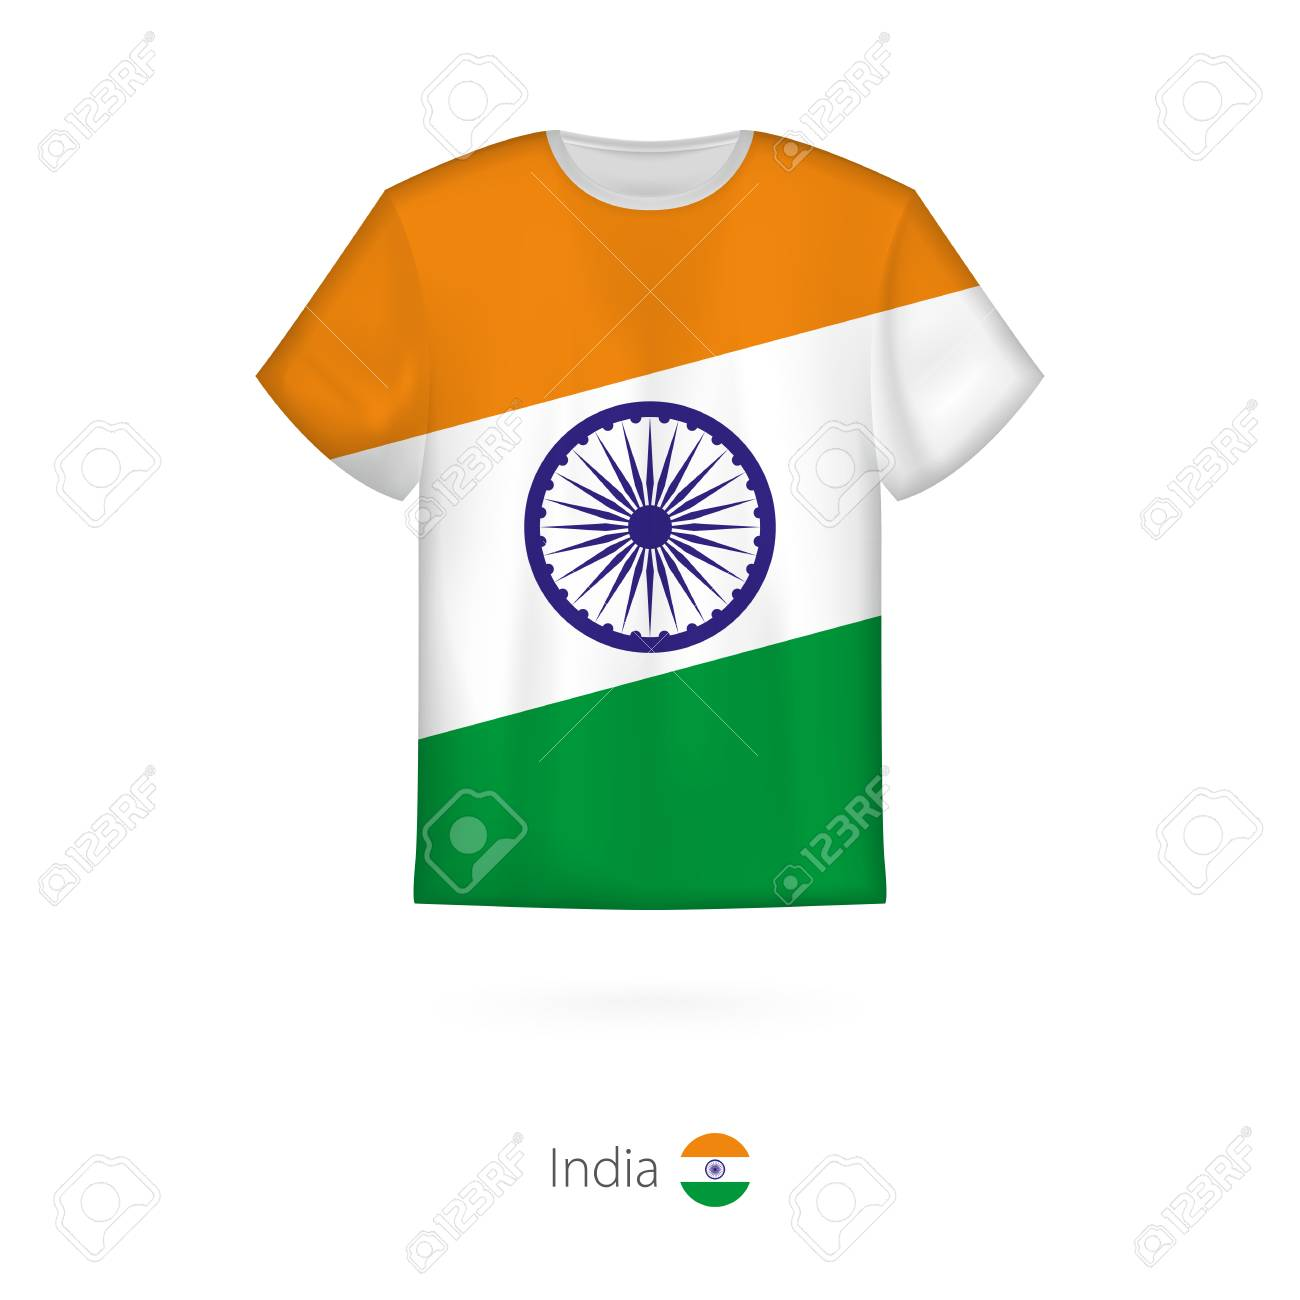 7fc2a1105 T-shirt Design With Flag Of India. T-shirt Vector Template. Royalty ...